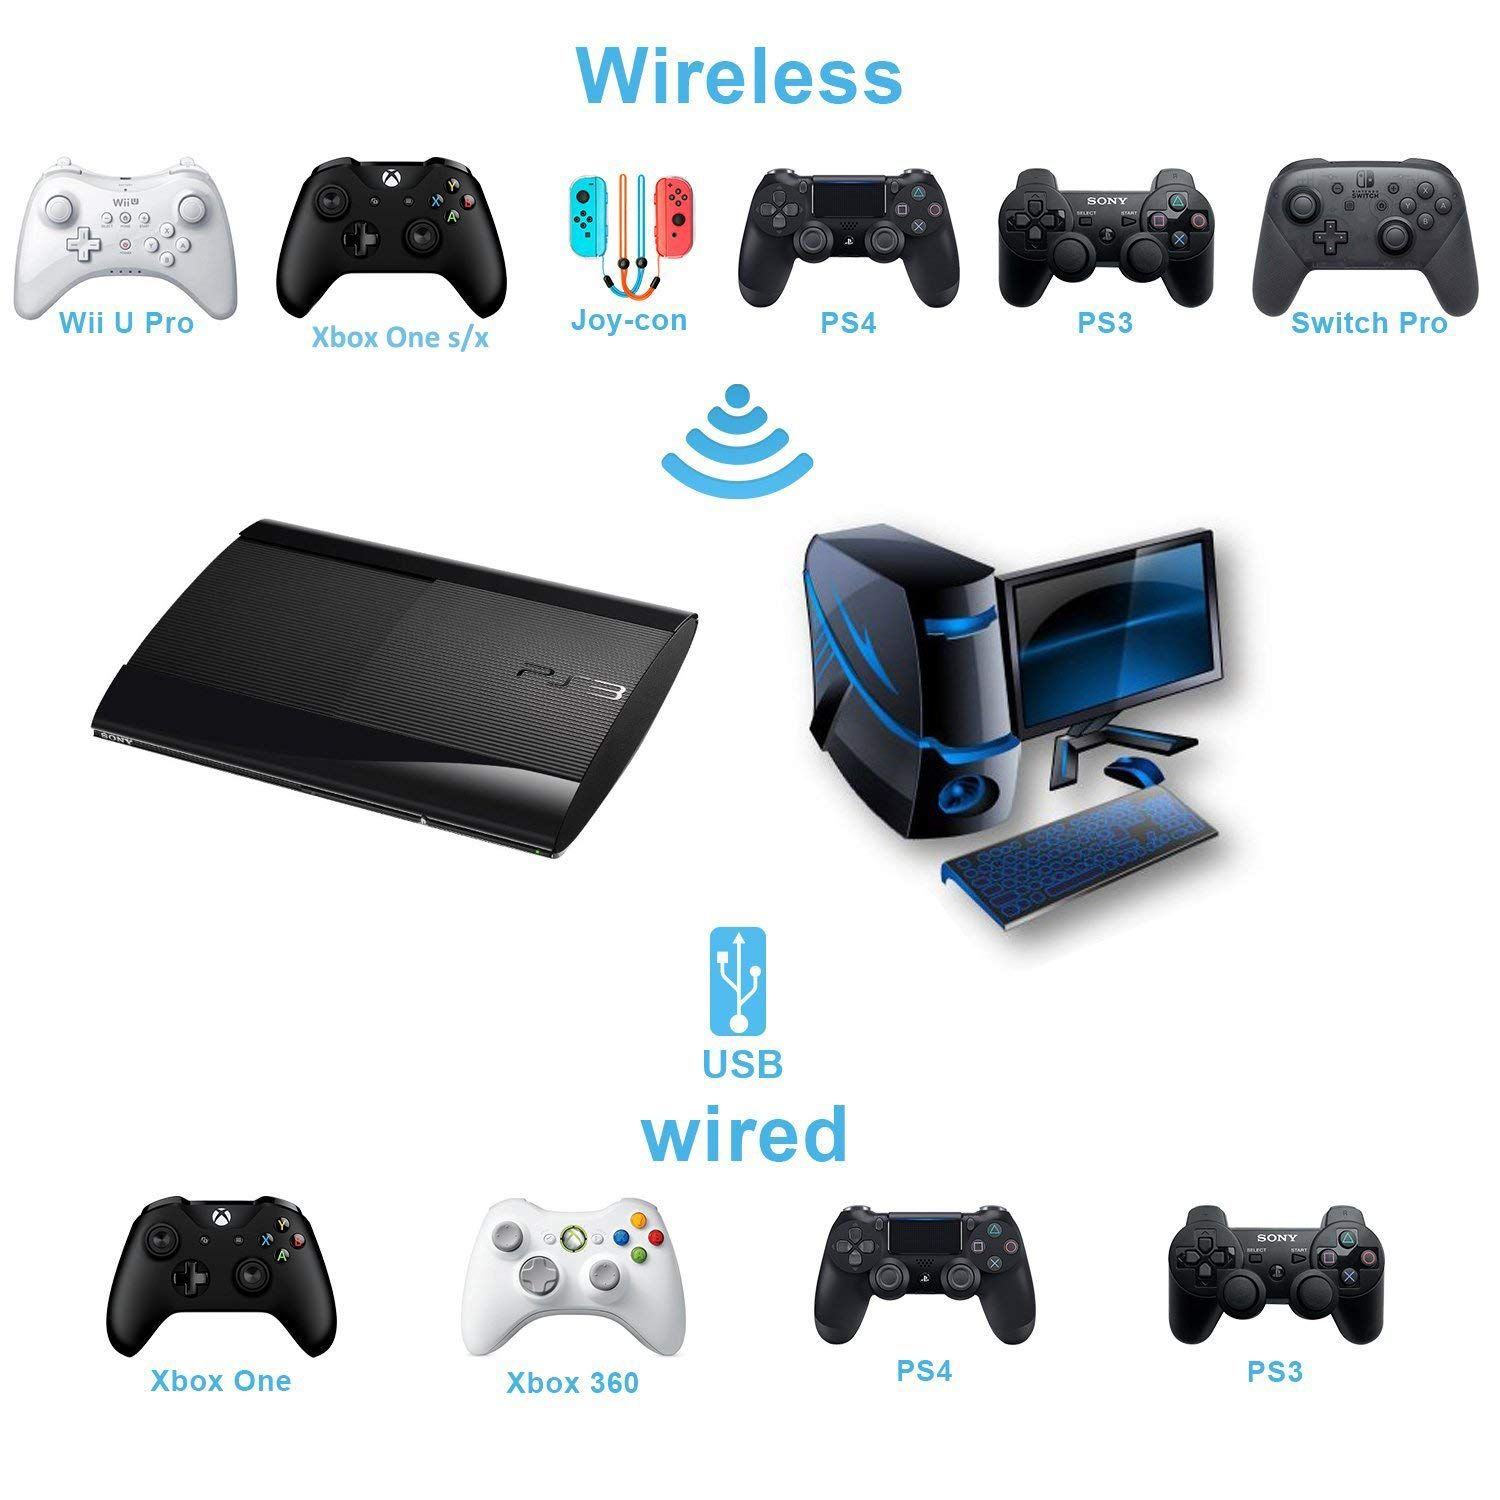 Lrego Magicns Wired And Wireless Ps4 Ps3 Xbox One Xbox 360 Will